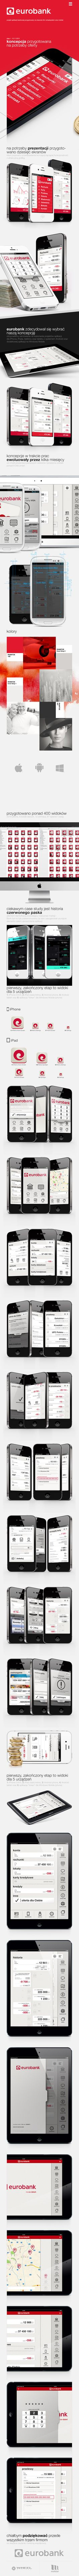 how to present a product App Ui Design, Web Design, Ios Ui, Mobile App Ui, Mobile Design, Banks, Presentation, Smartphone, Minimal